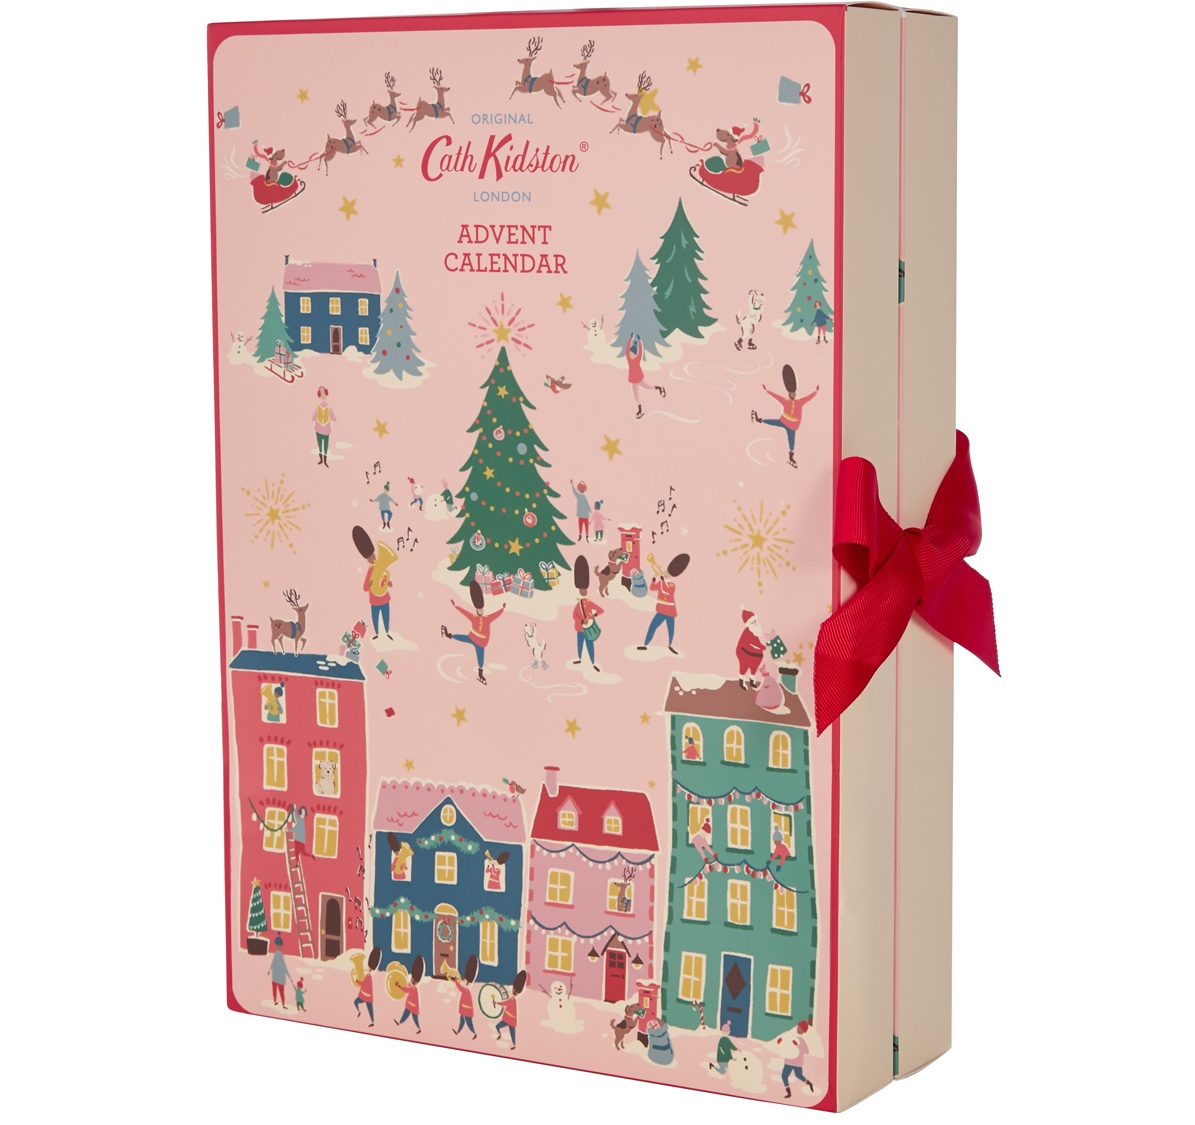 Cath Kidston advent calendar 2019 - The LDN Diaries